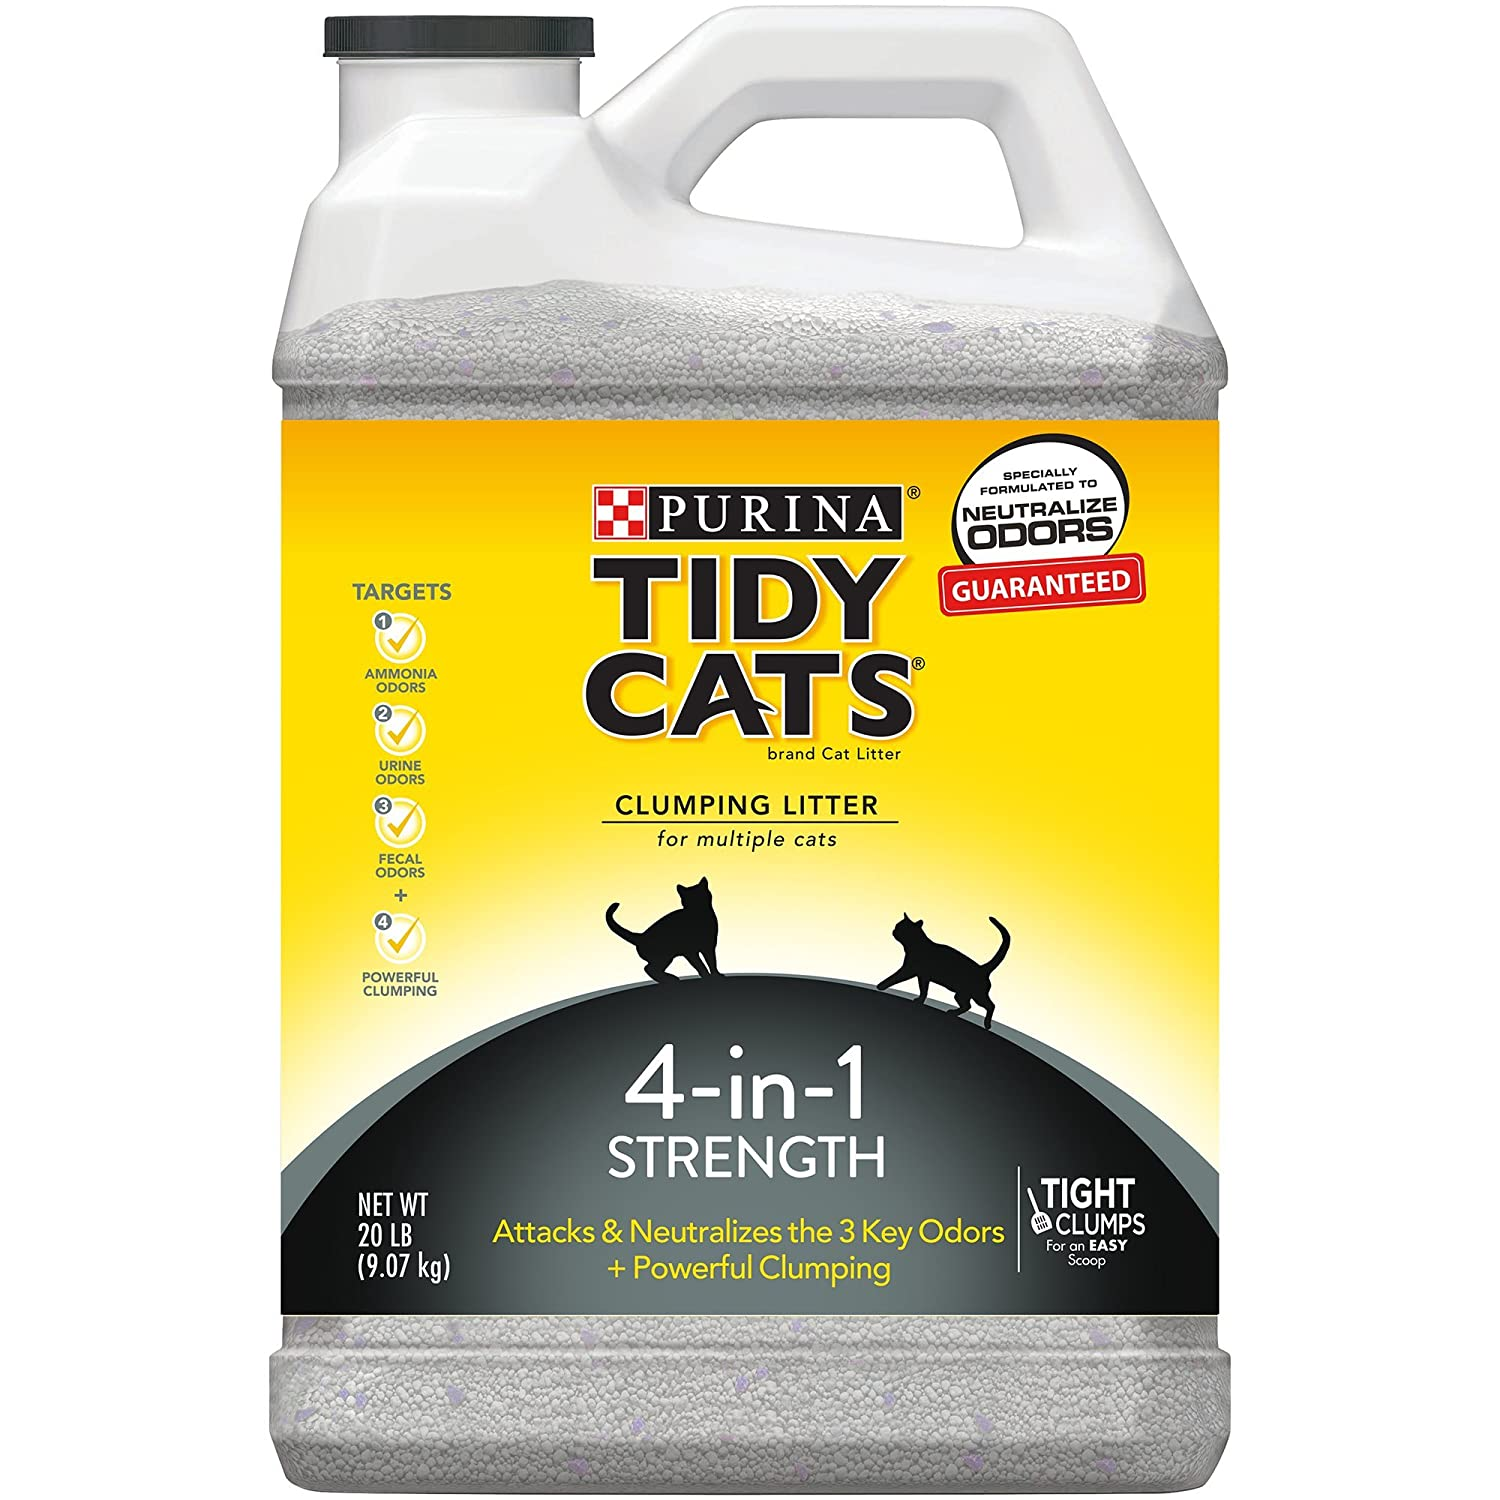 Tidy Cats 4 in 1 Clumping Cat Litter 20 lbs.